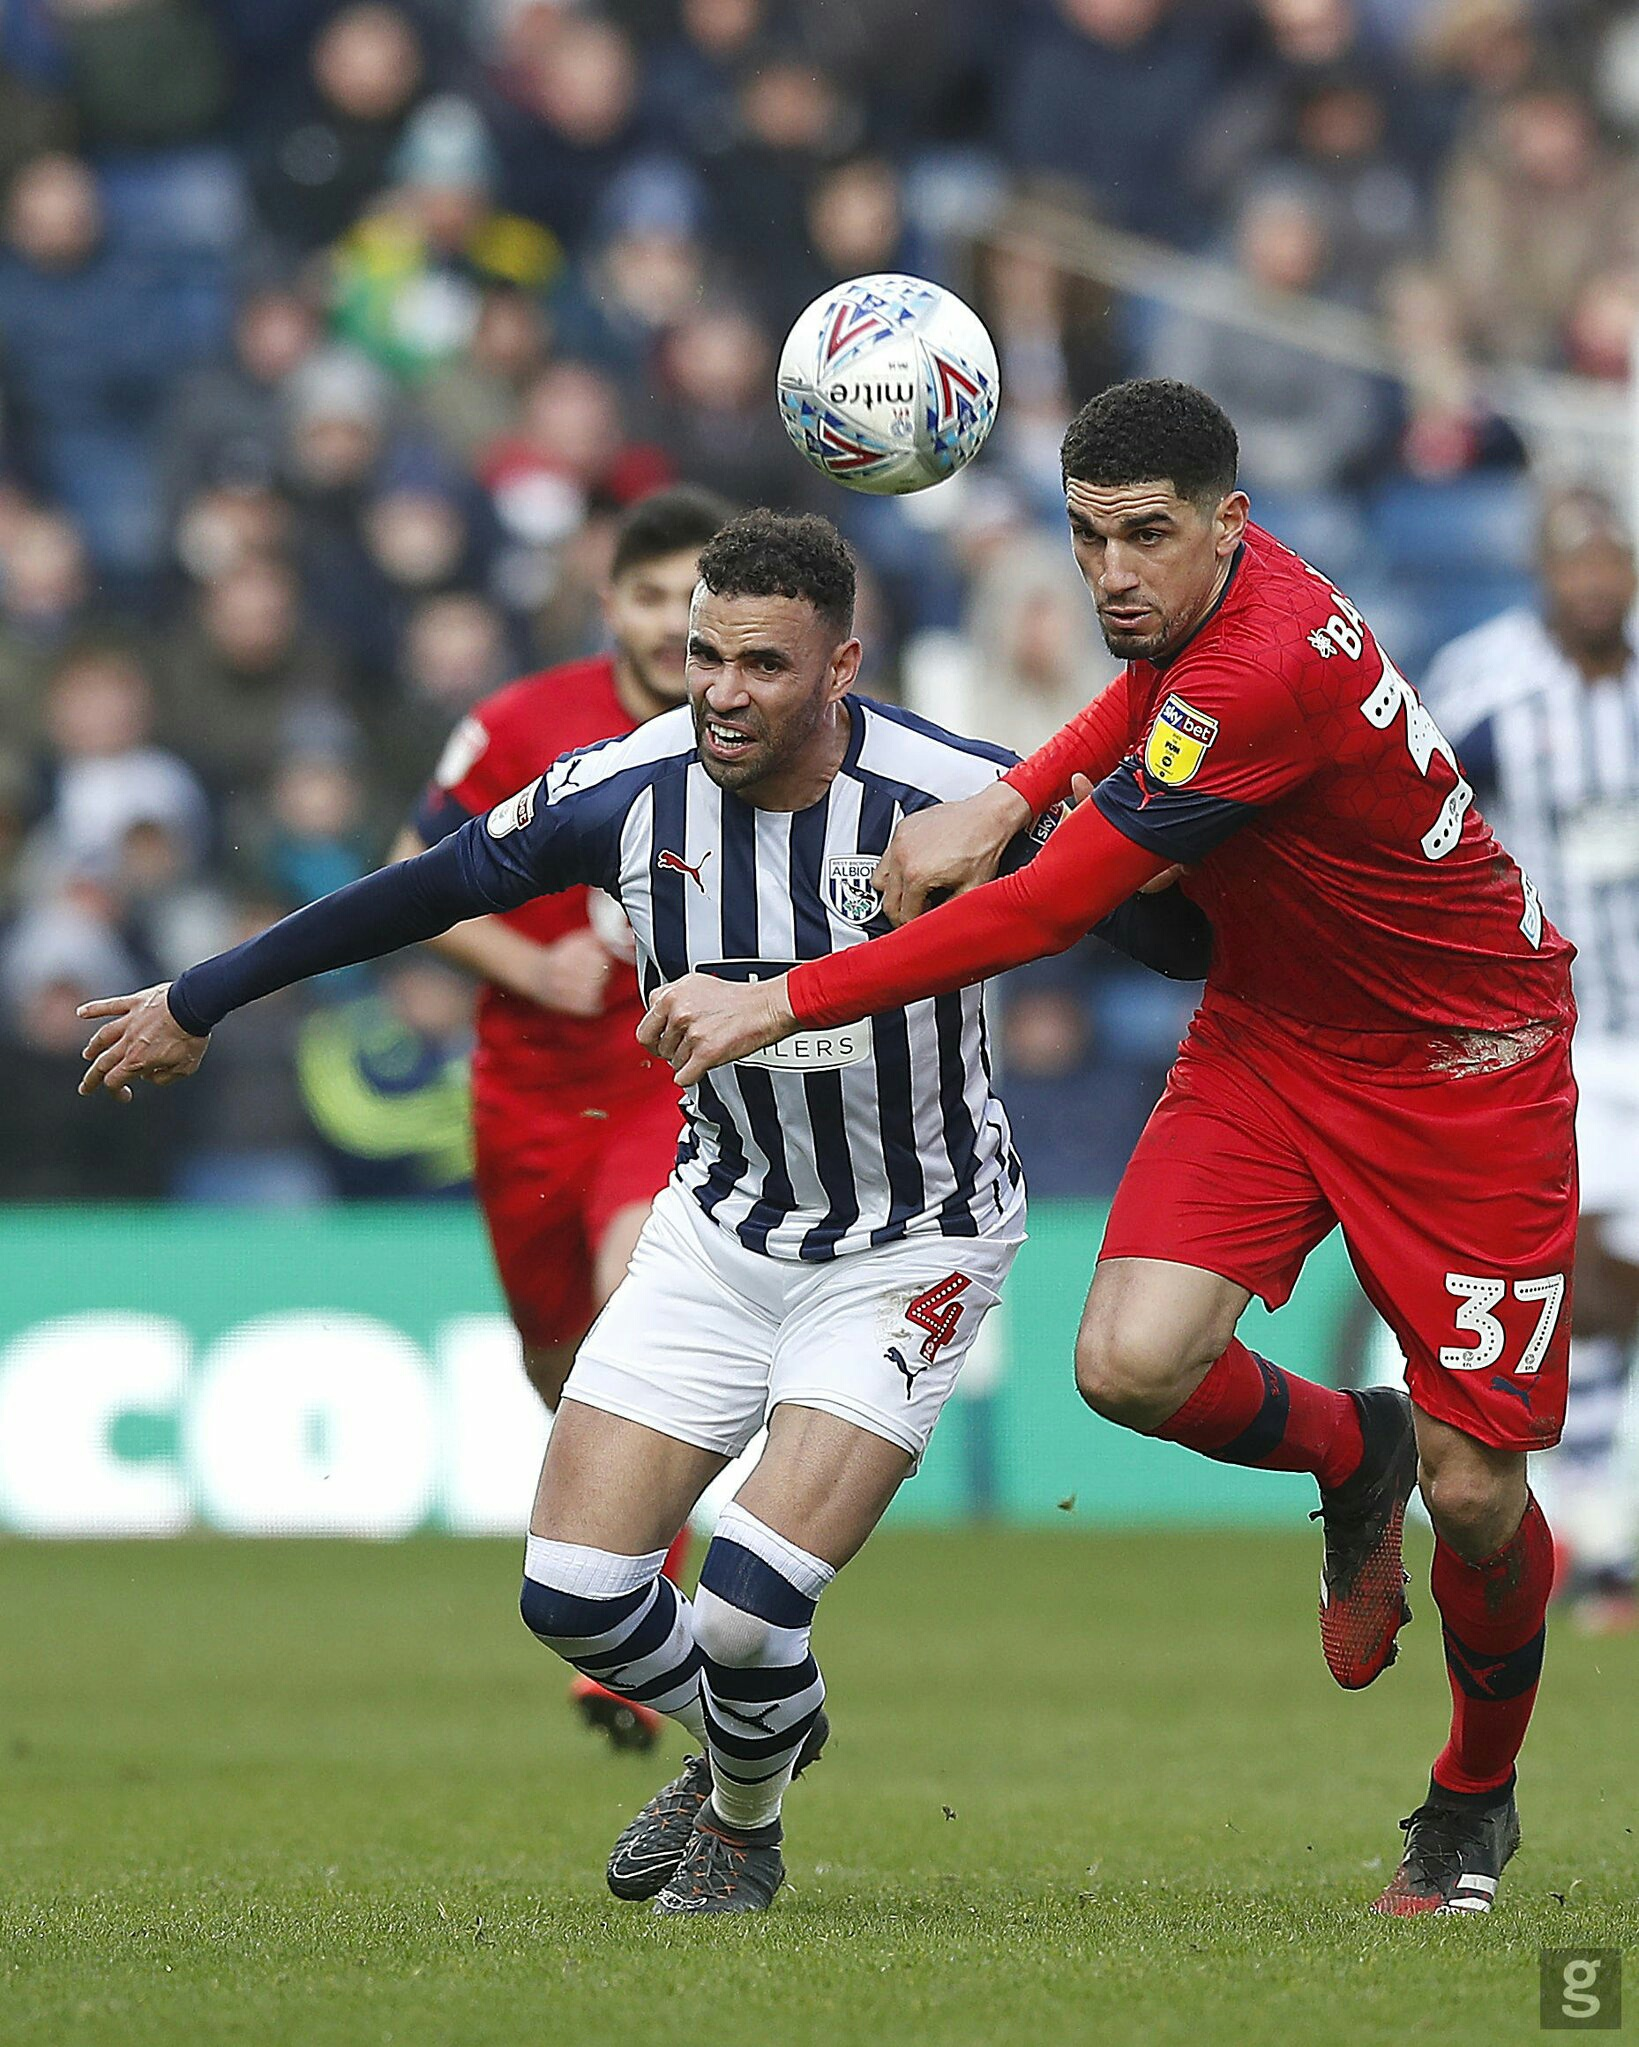 Brighton Boss Potter: We Will Take Decision On Balogun's Future This Summer